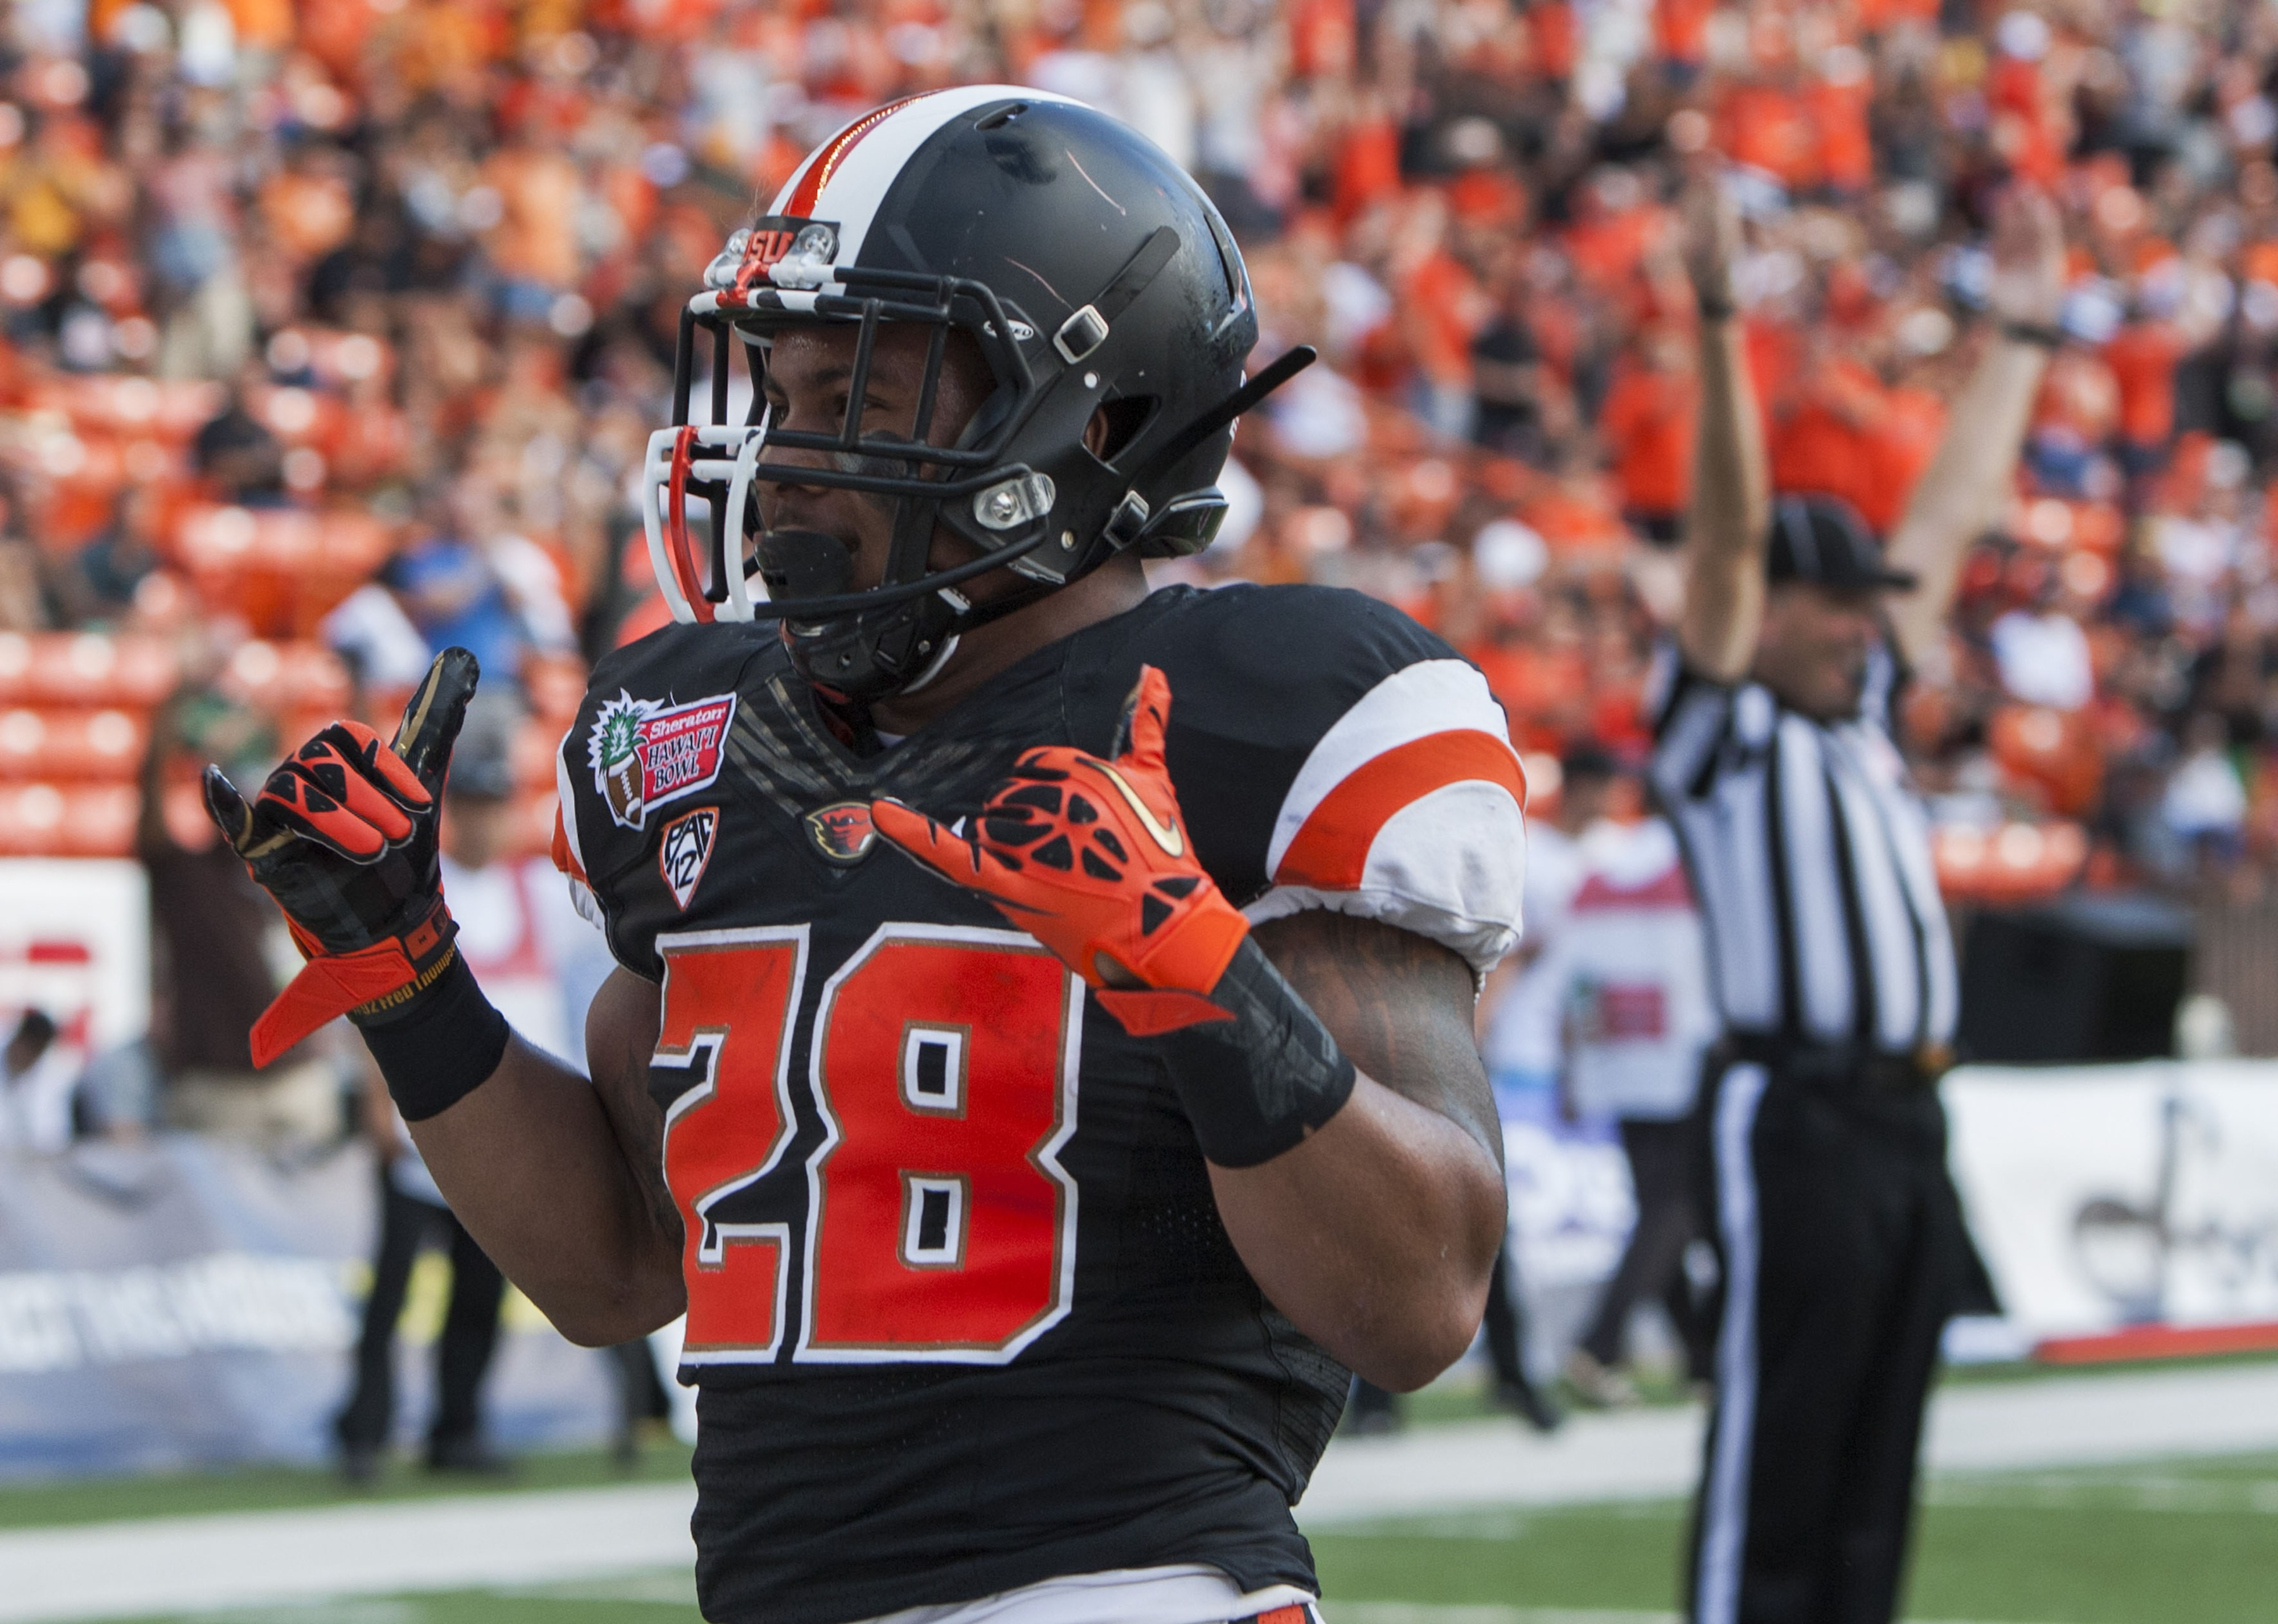 2013 Hawaii Bowl results: Oregon State scores early, often in win over Boise State